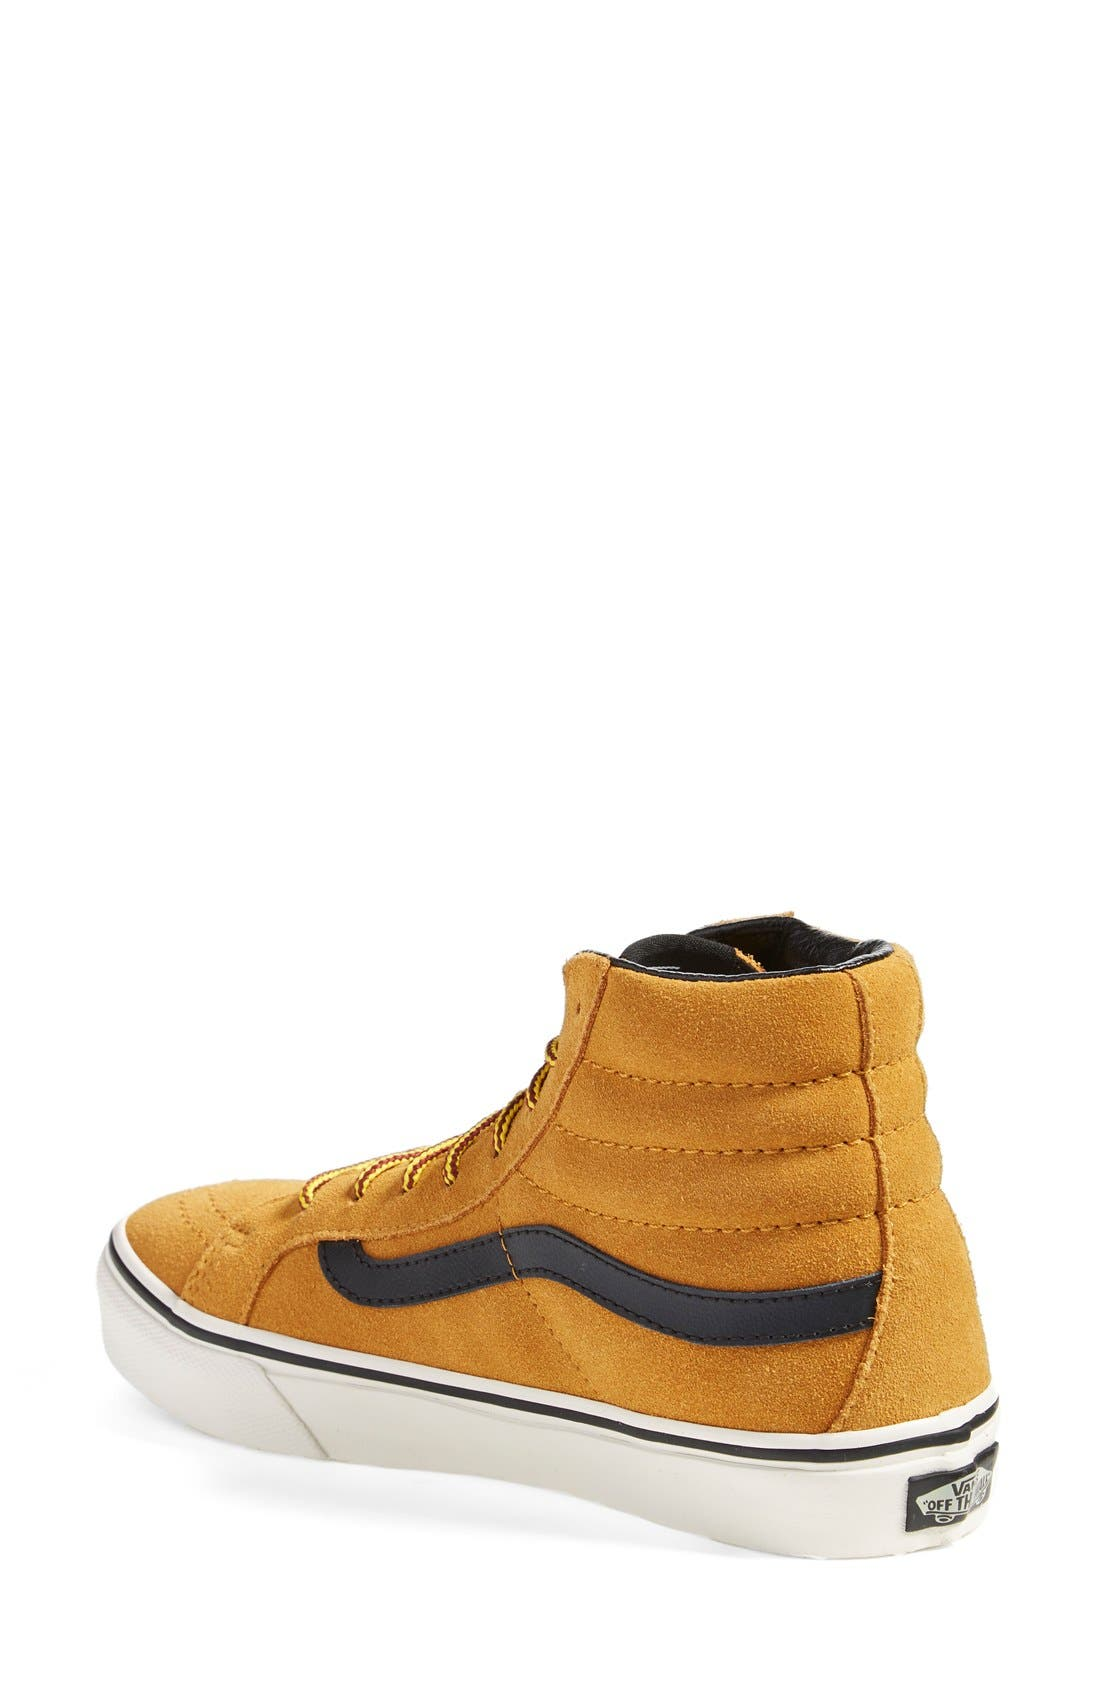 Alternate Image 2  - Vans 'Sk8-Hi Slim' Suede Sneaker (Women)